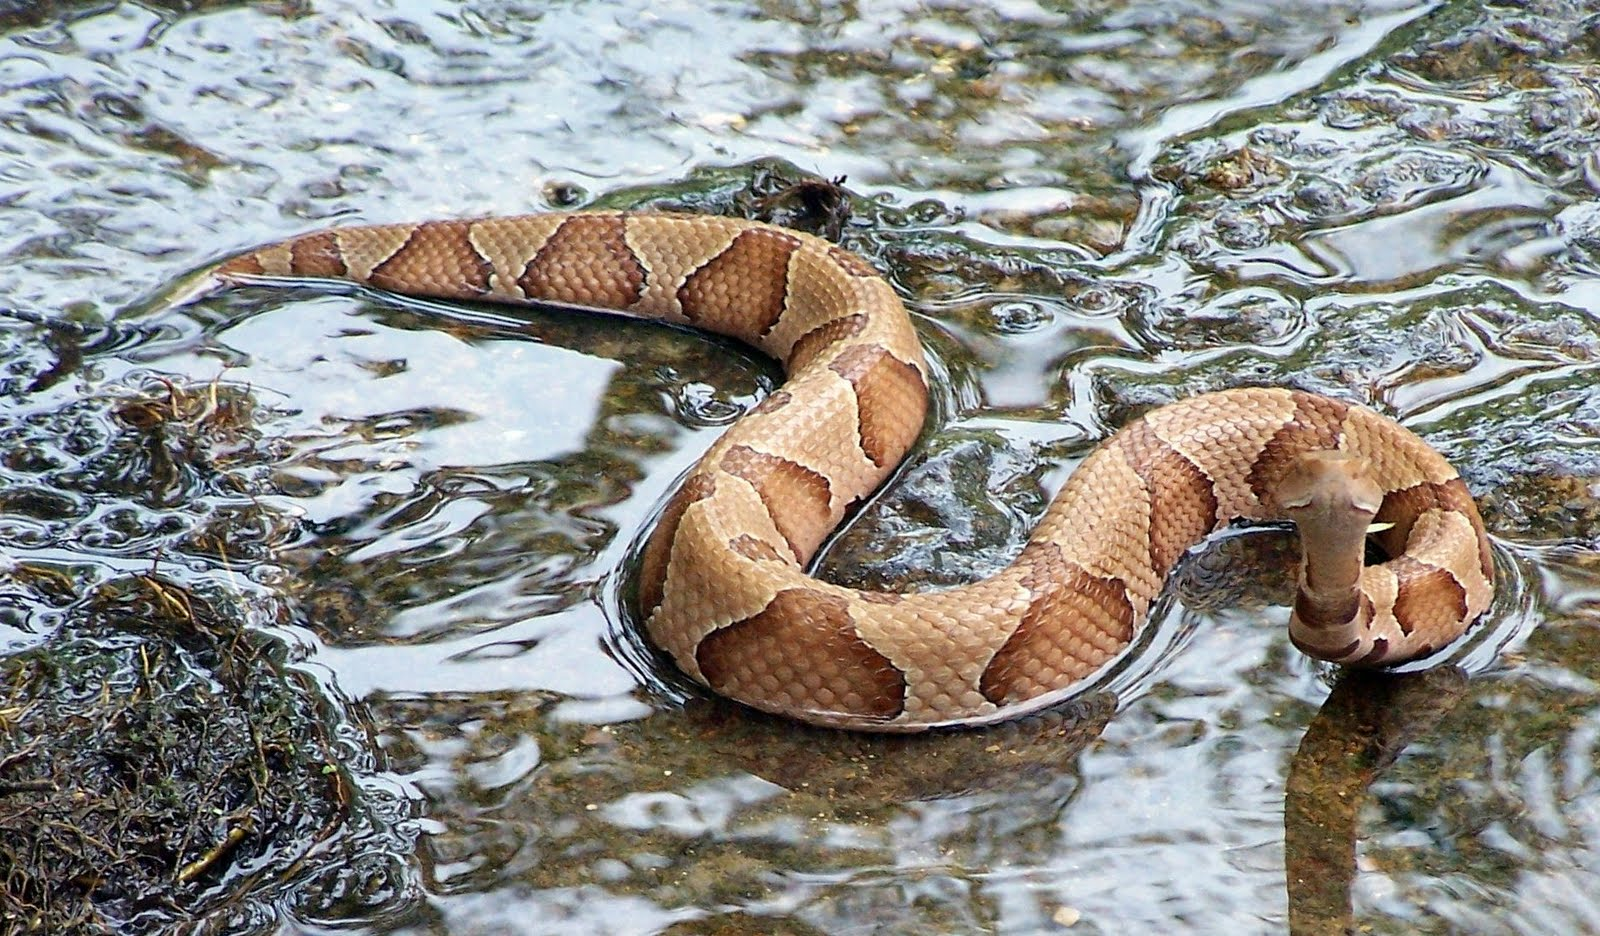 Northern Water Snake - National Wildlife Federation